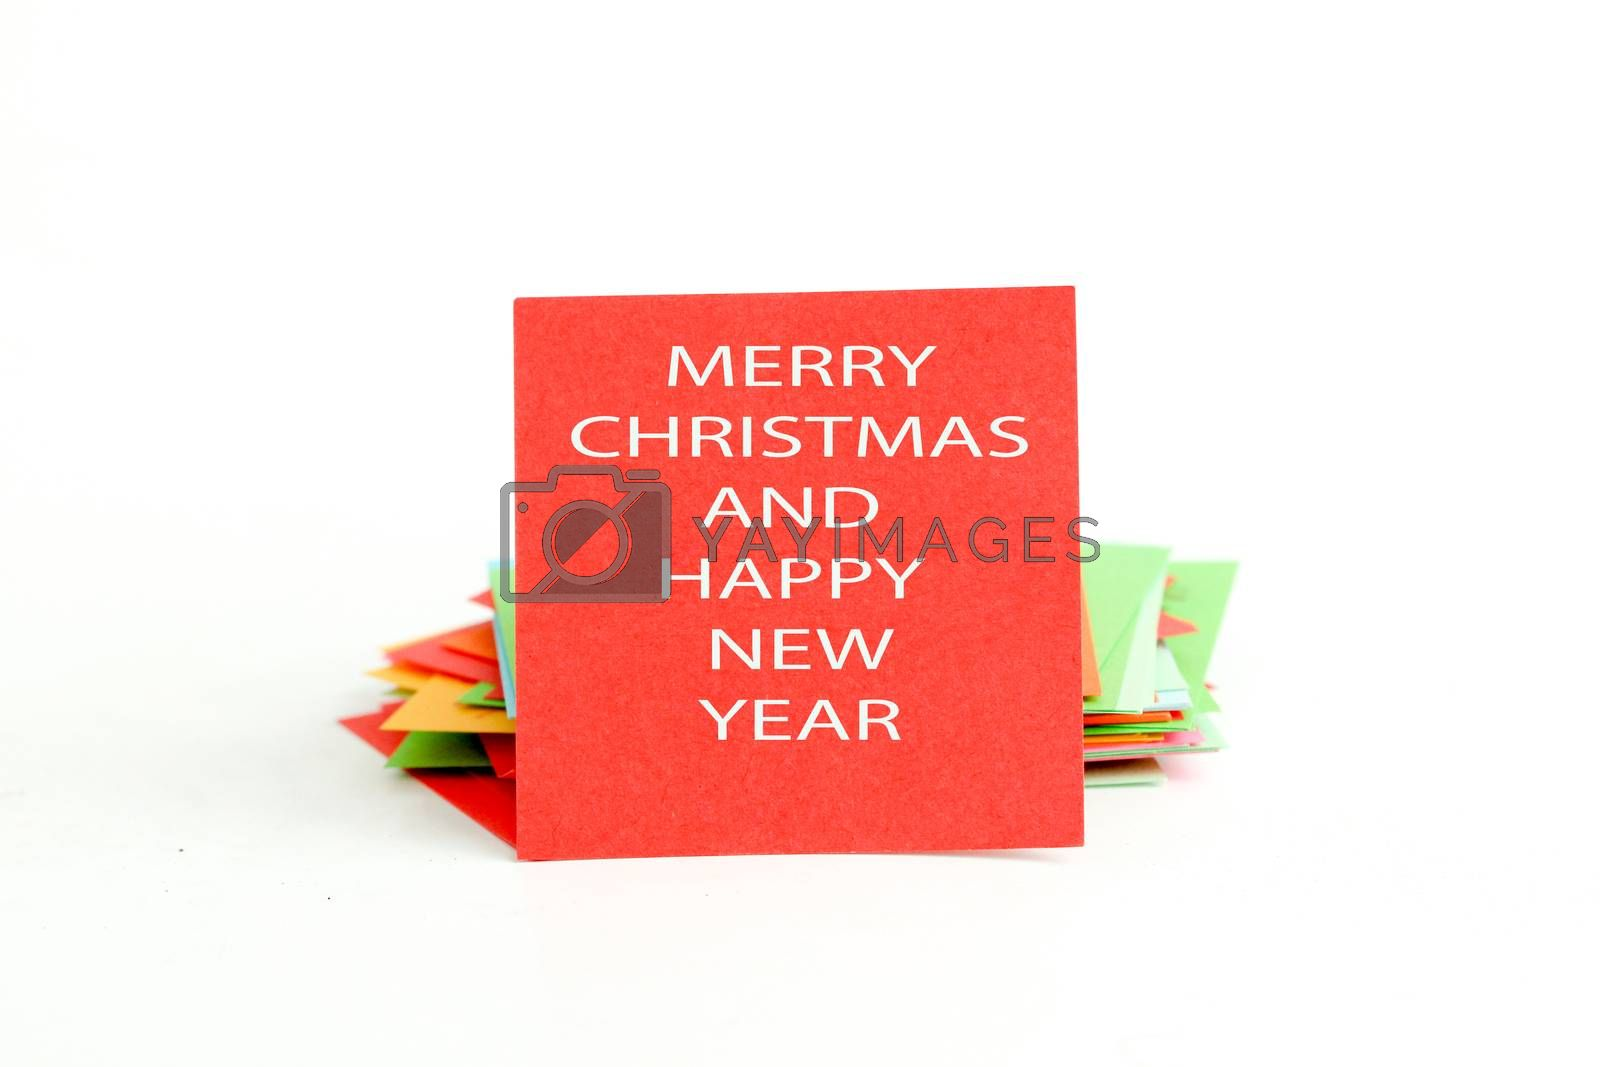 picture of a orange note paper with text merry christmas